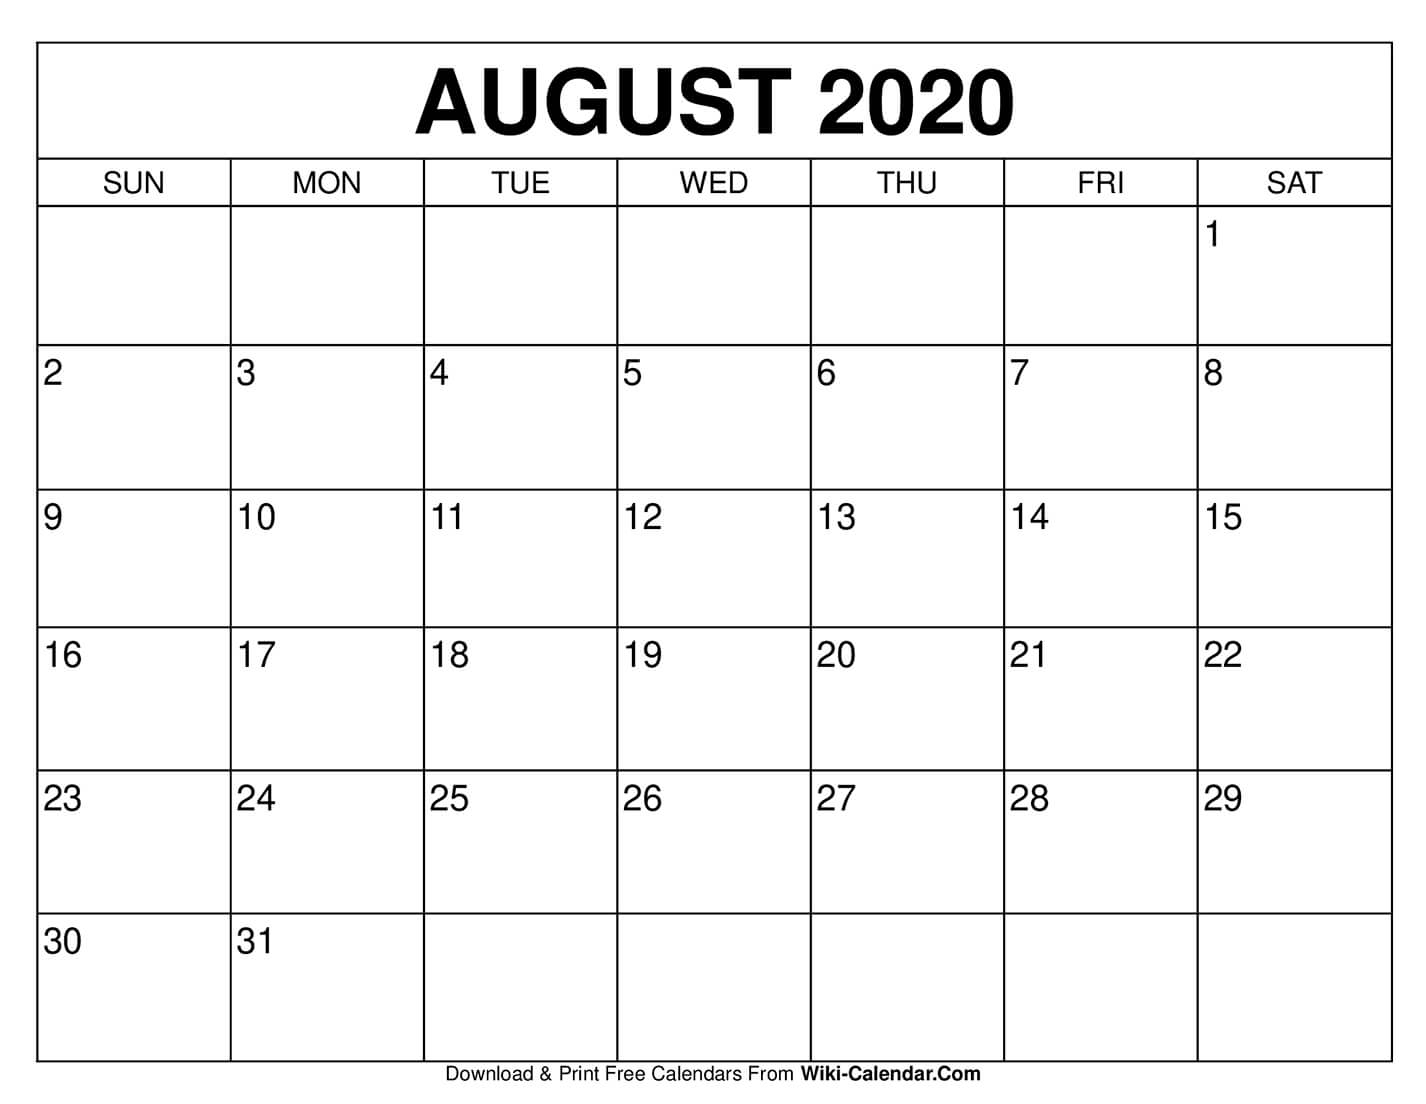 Free Printable August 2020 Calendars pertaining to Print Free 2020 Calendar Without Downloading Weekly Writing